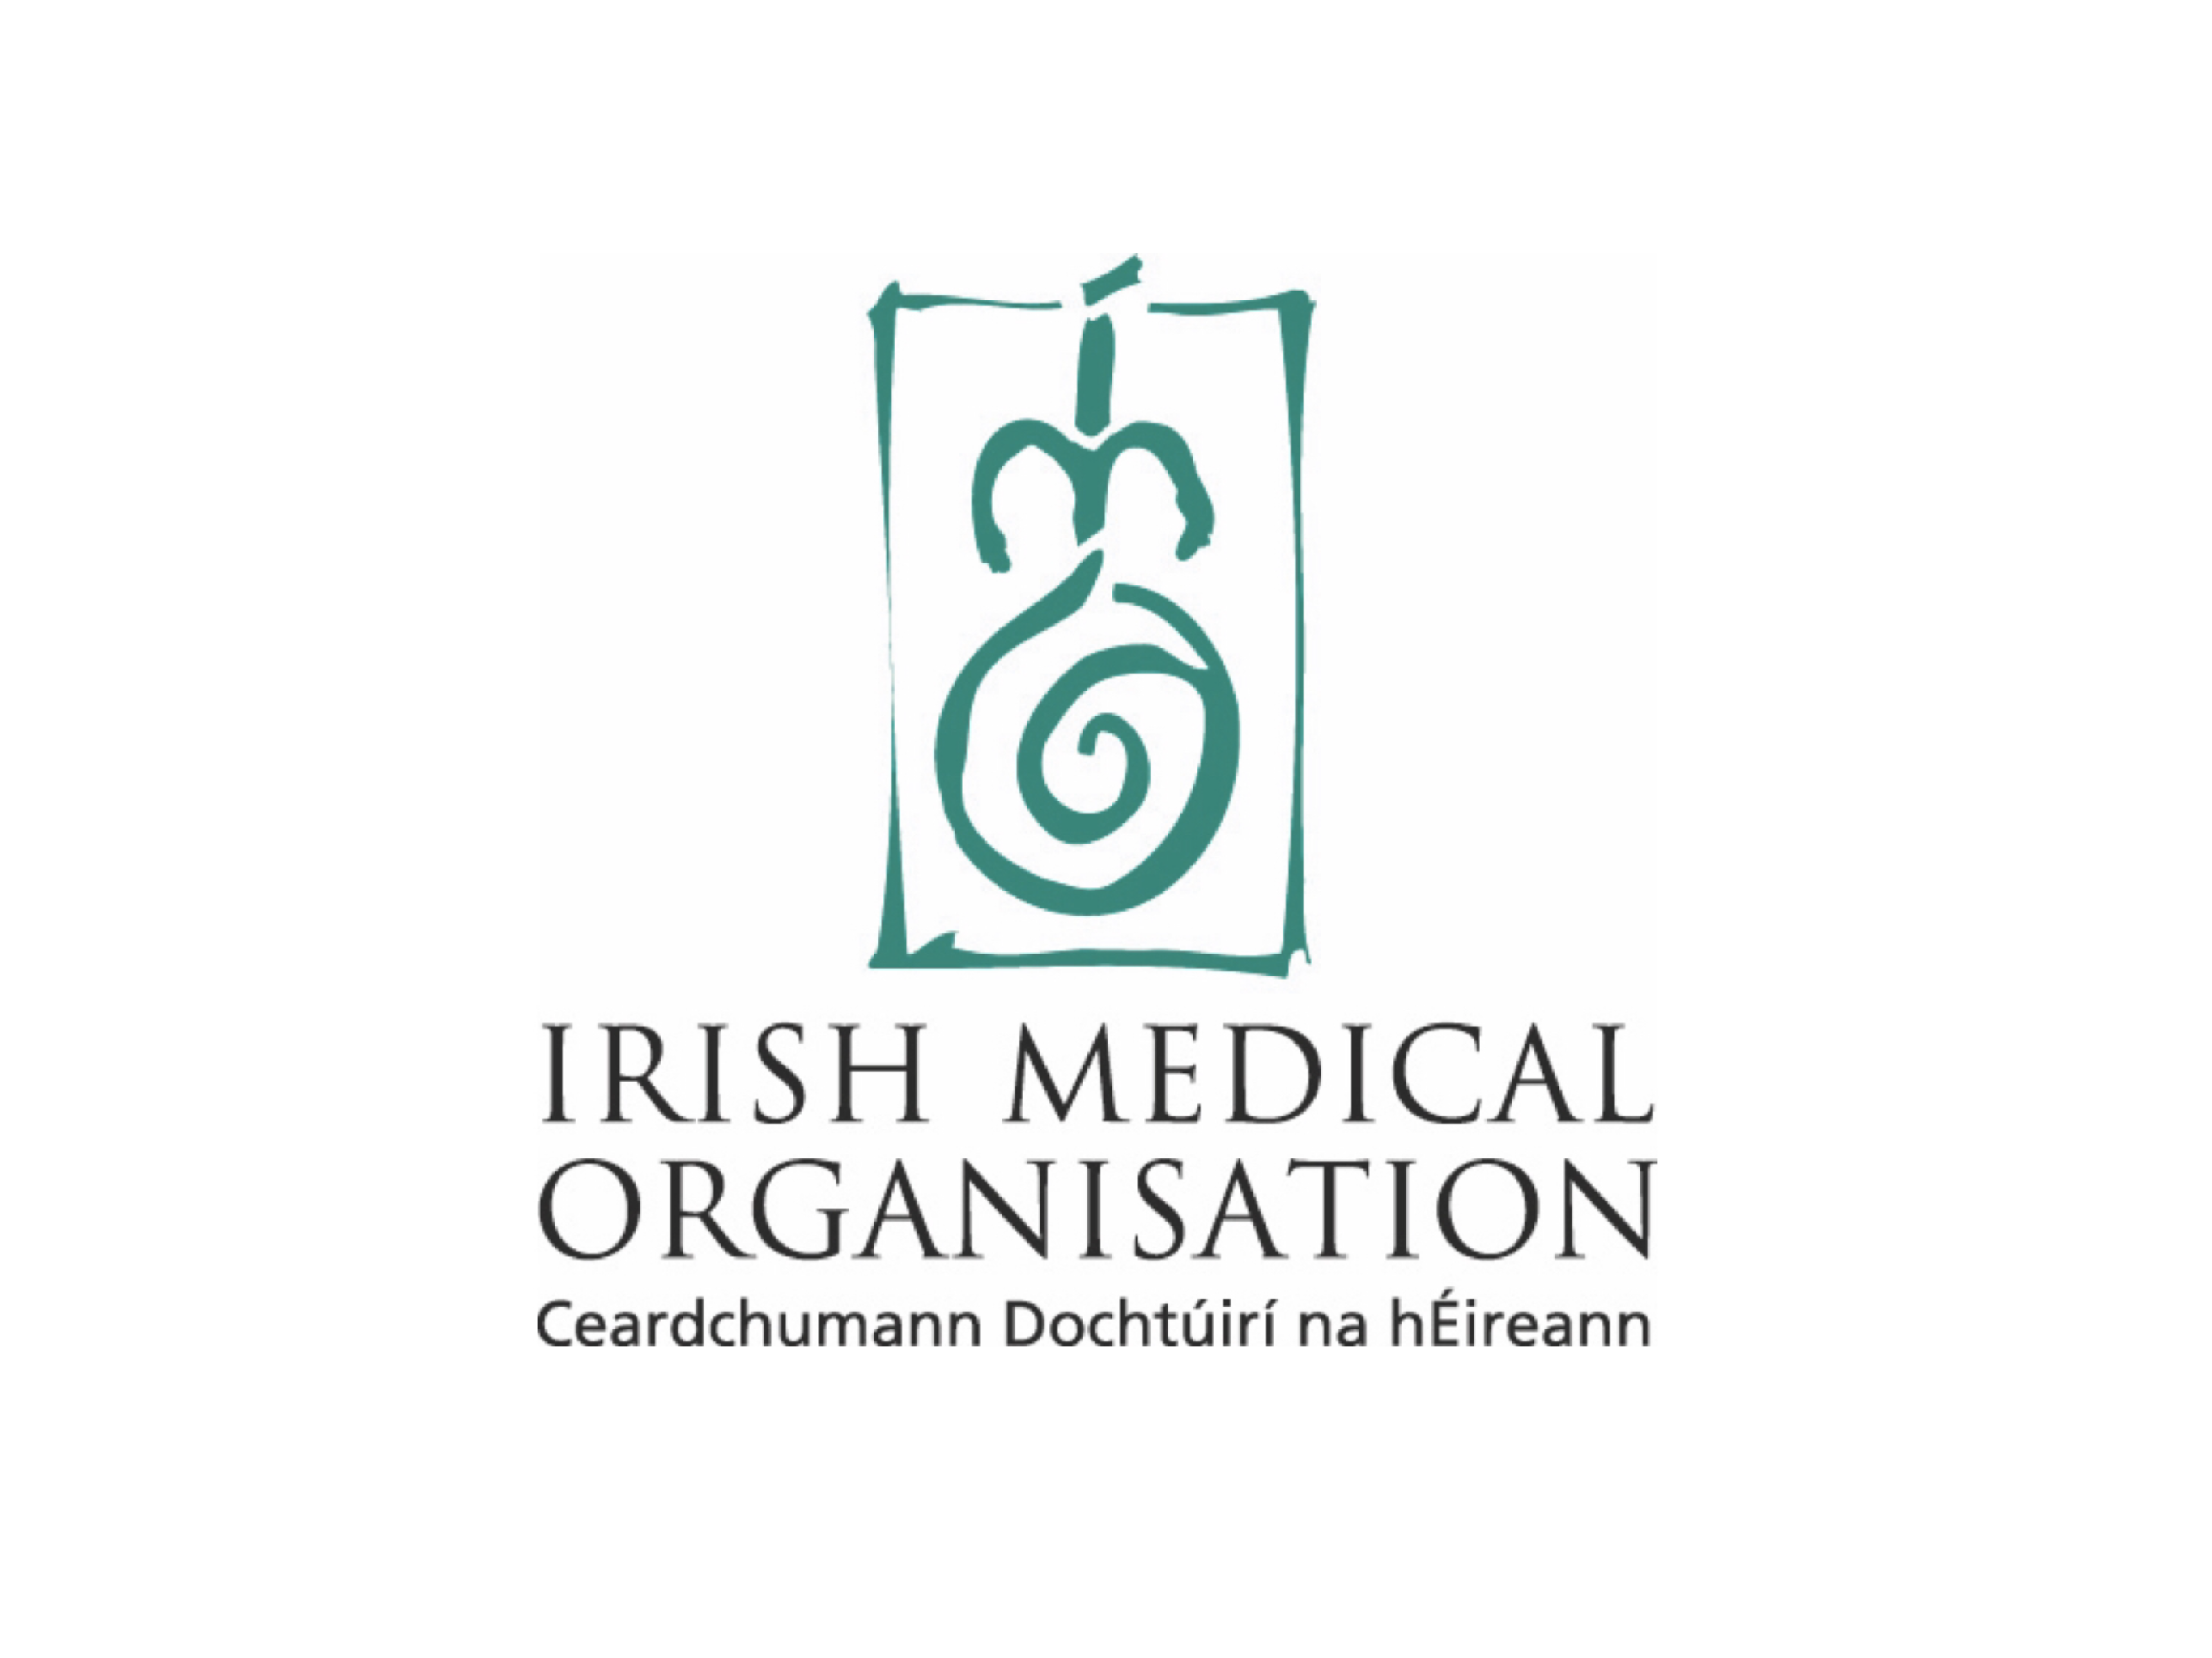 Statement by IMO regarding Free GP Care Plans